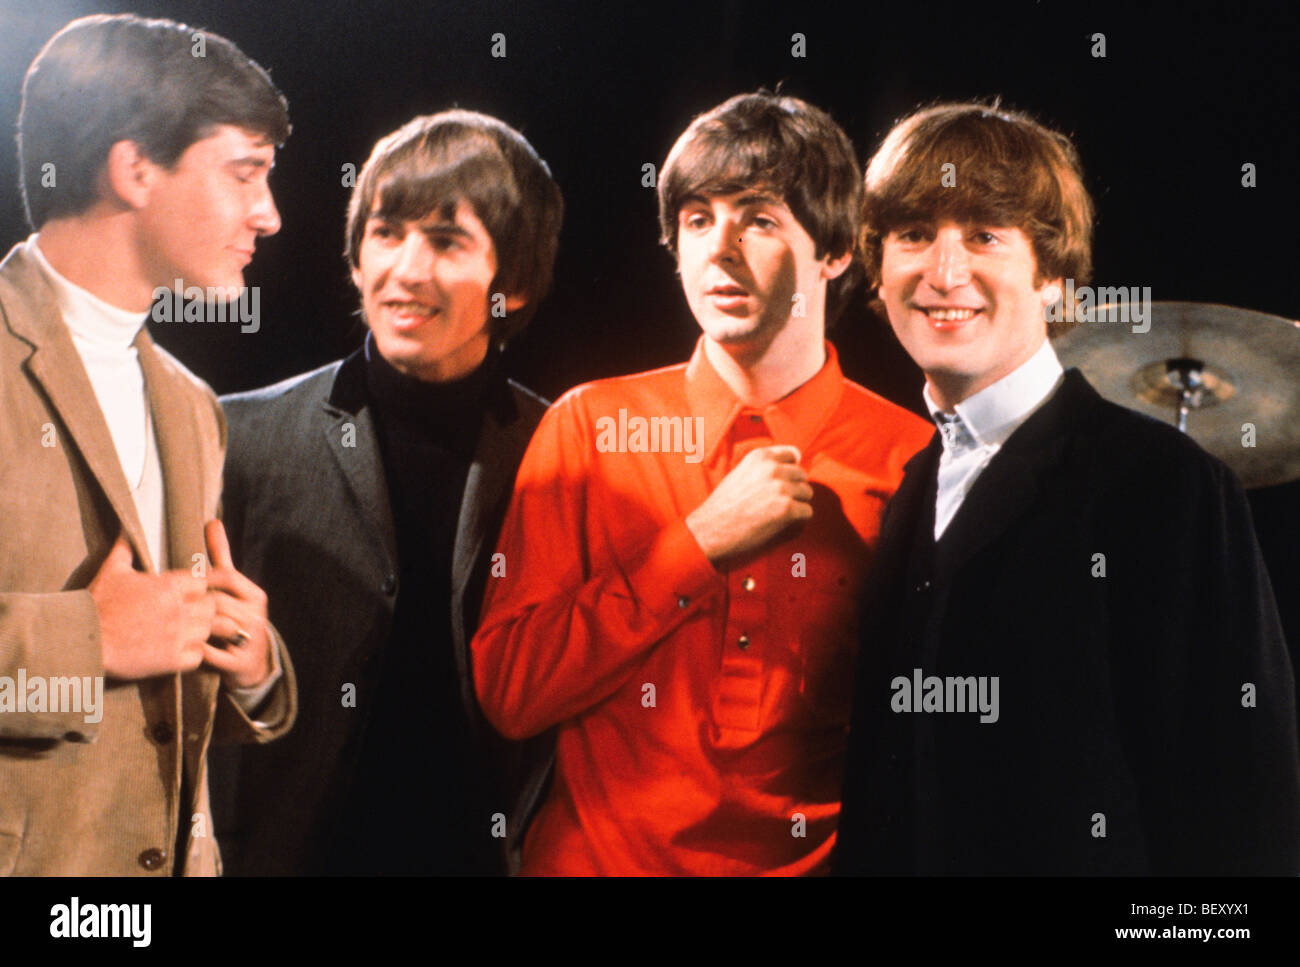 Los Beatles'George Harrison'John Lennon'paul mccartney'Ringo Starr Imagen De Stock